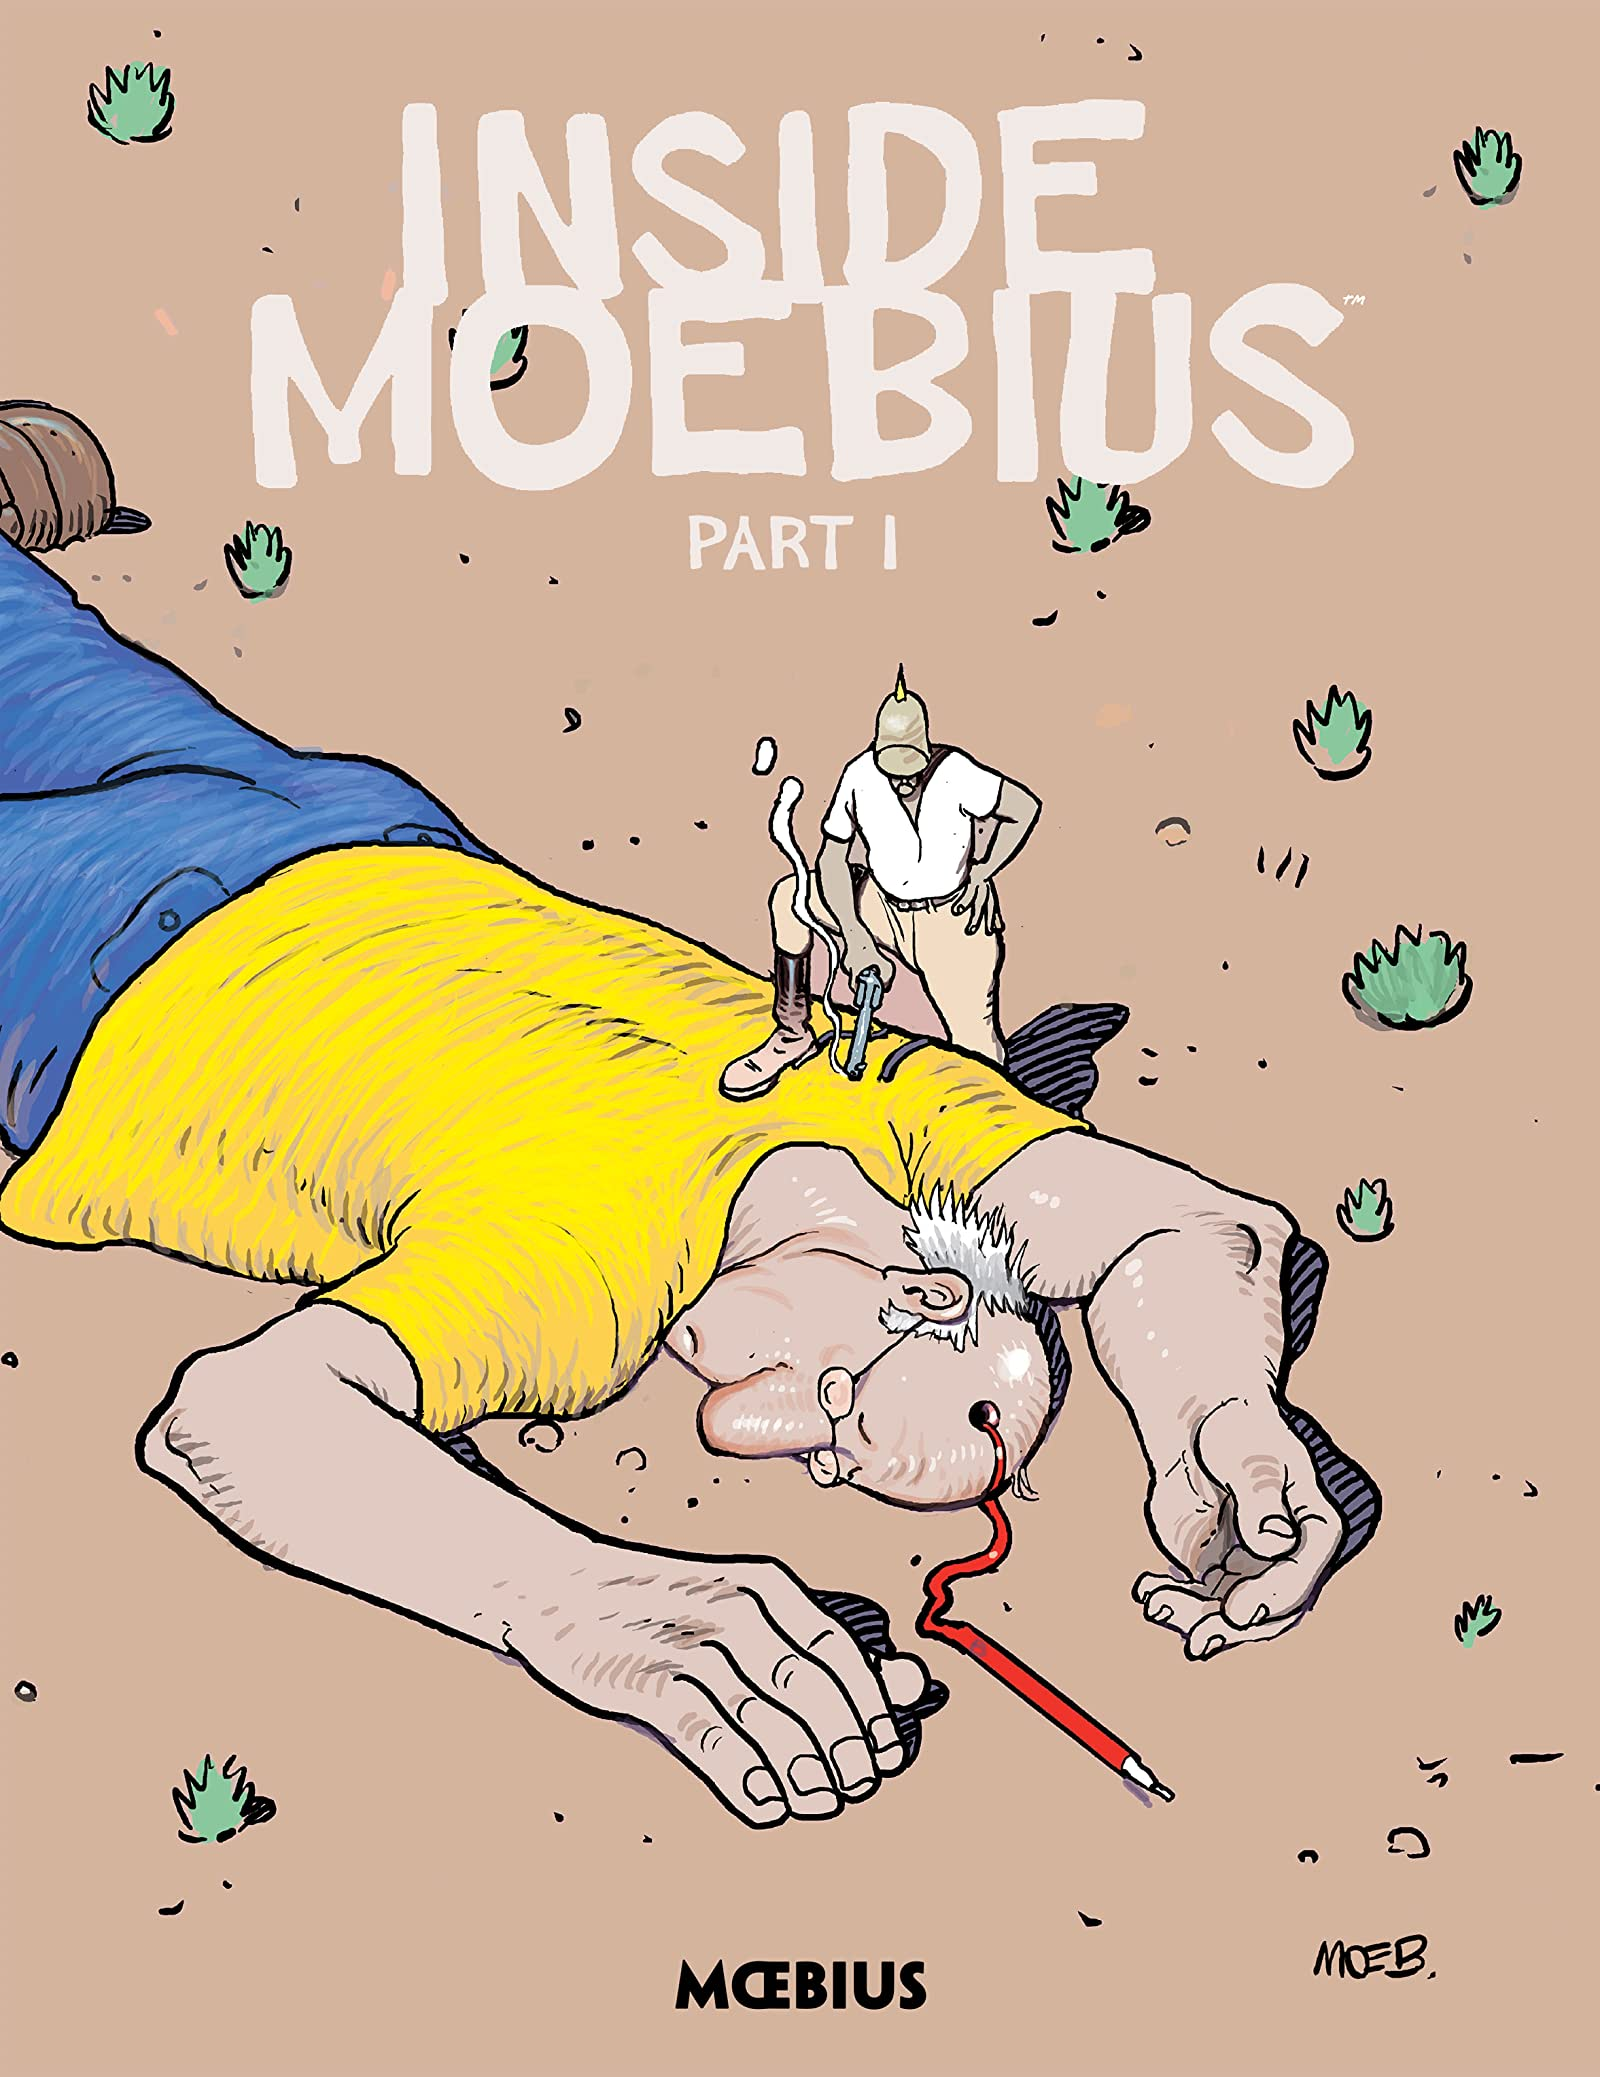 Billedresultat for inside moebius